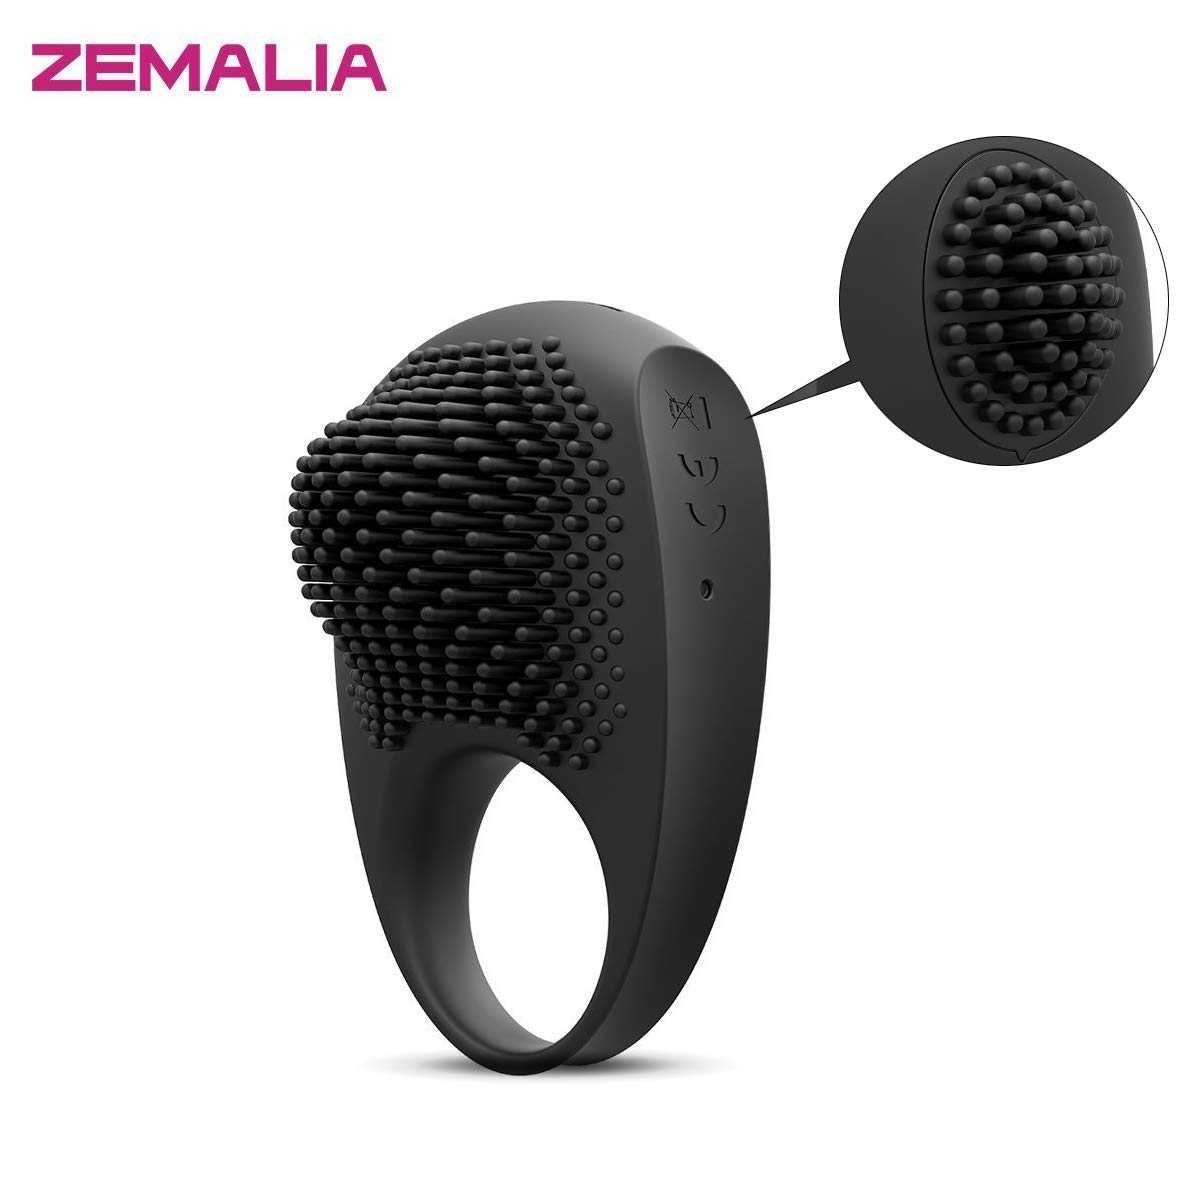 ZEMALIA Cock Penis Rings Adult Sex Toys for Male or Couples Waterproof Rechargeable Toy Vibrators Masturbation